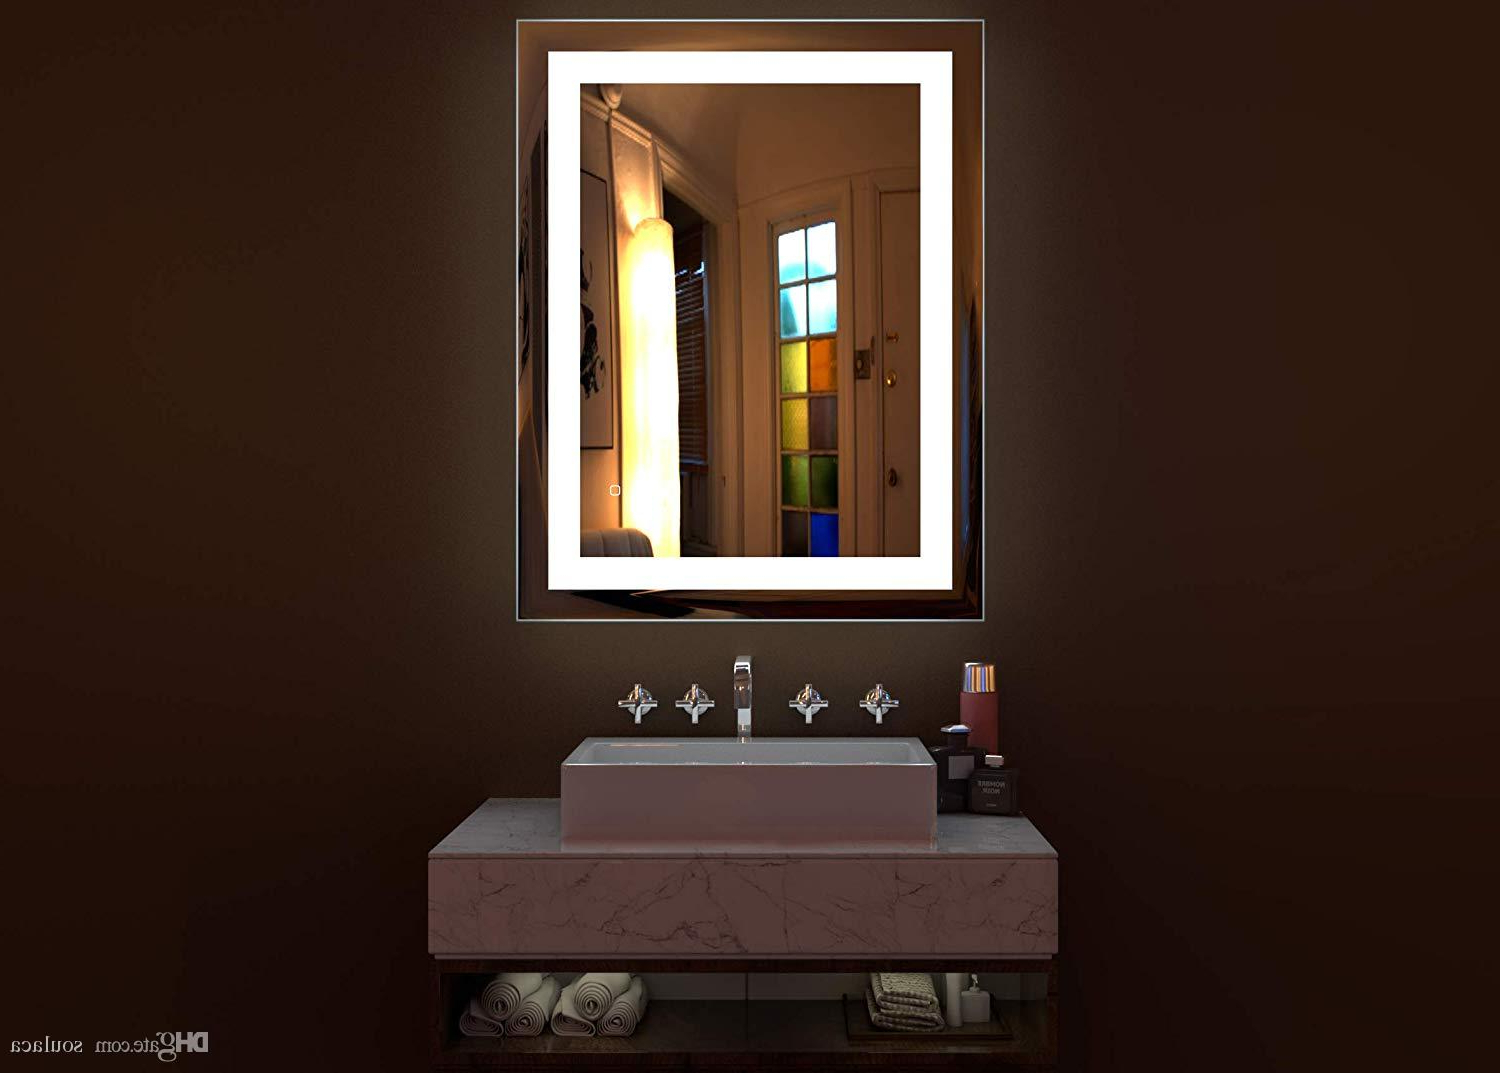 Lighted Bathroom Wall Mirrors Throughout 2020 Soulaca 3 Led Lighted Bathroom Wall Mounted Mirror With White Light High  Lumen Anti Fog Touch Button Ip44 Waterproof Vertical & Horizontal (Gallery 12 of 20)